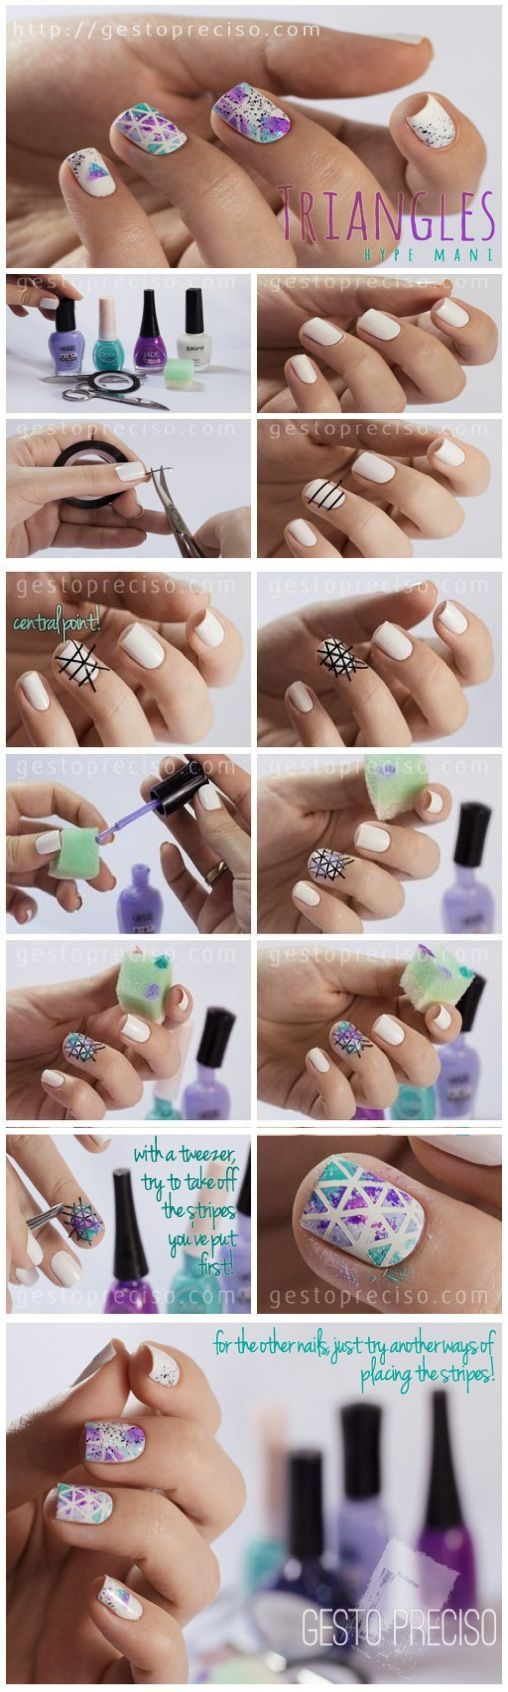 Holiday Sweater Nail Art Tutorial www.youtube.com/...